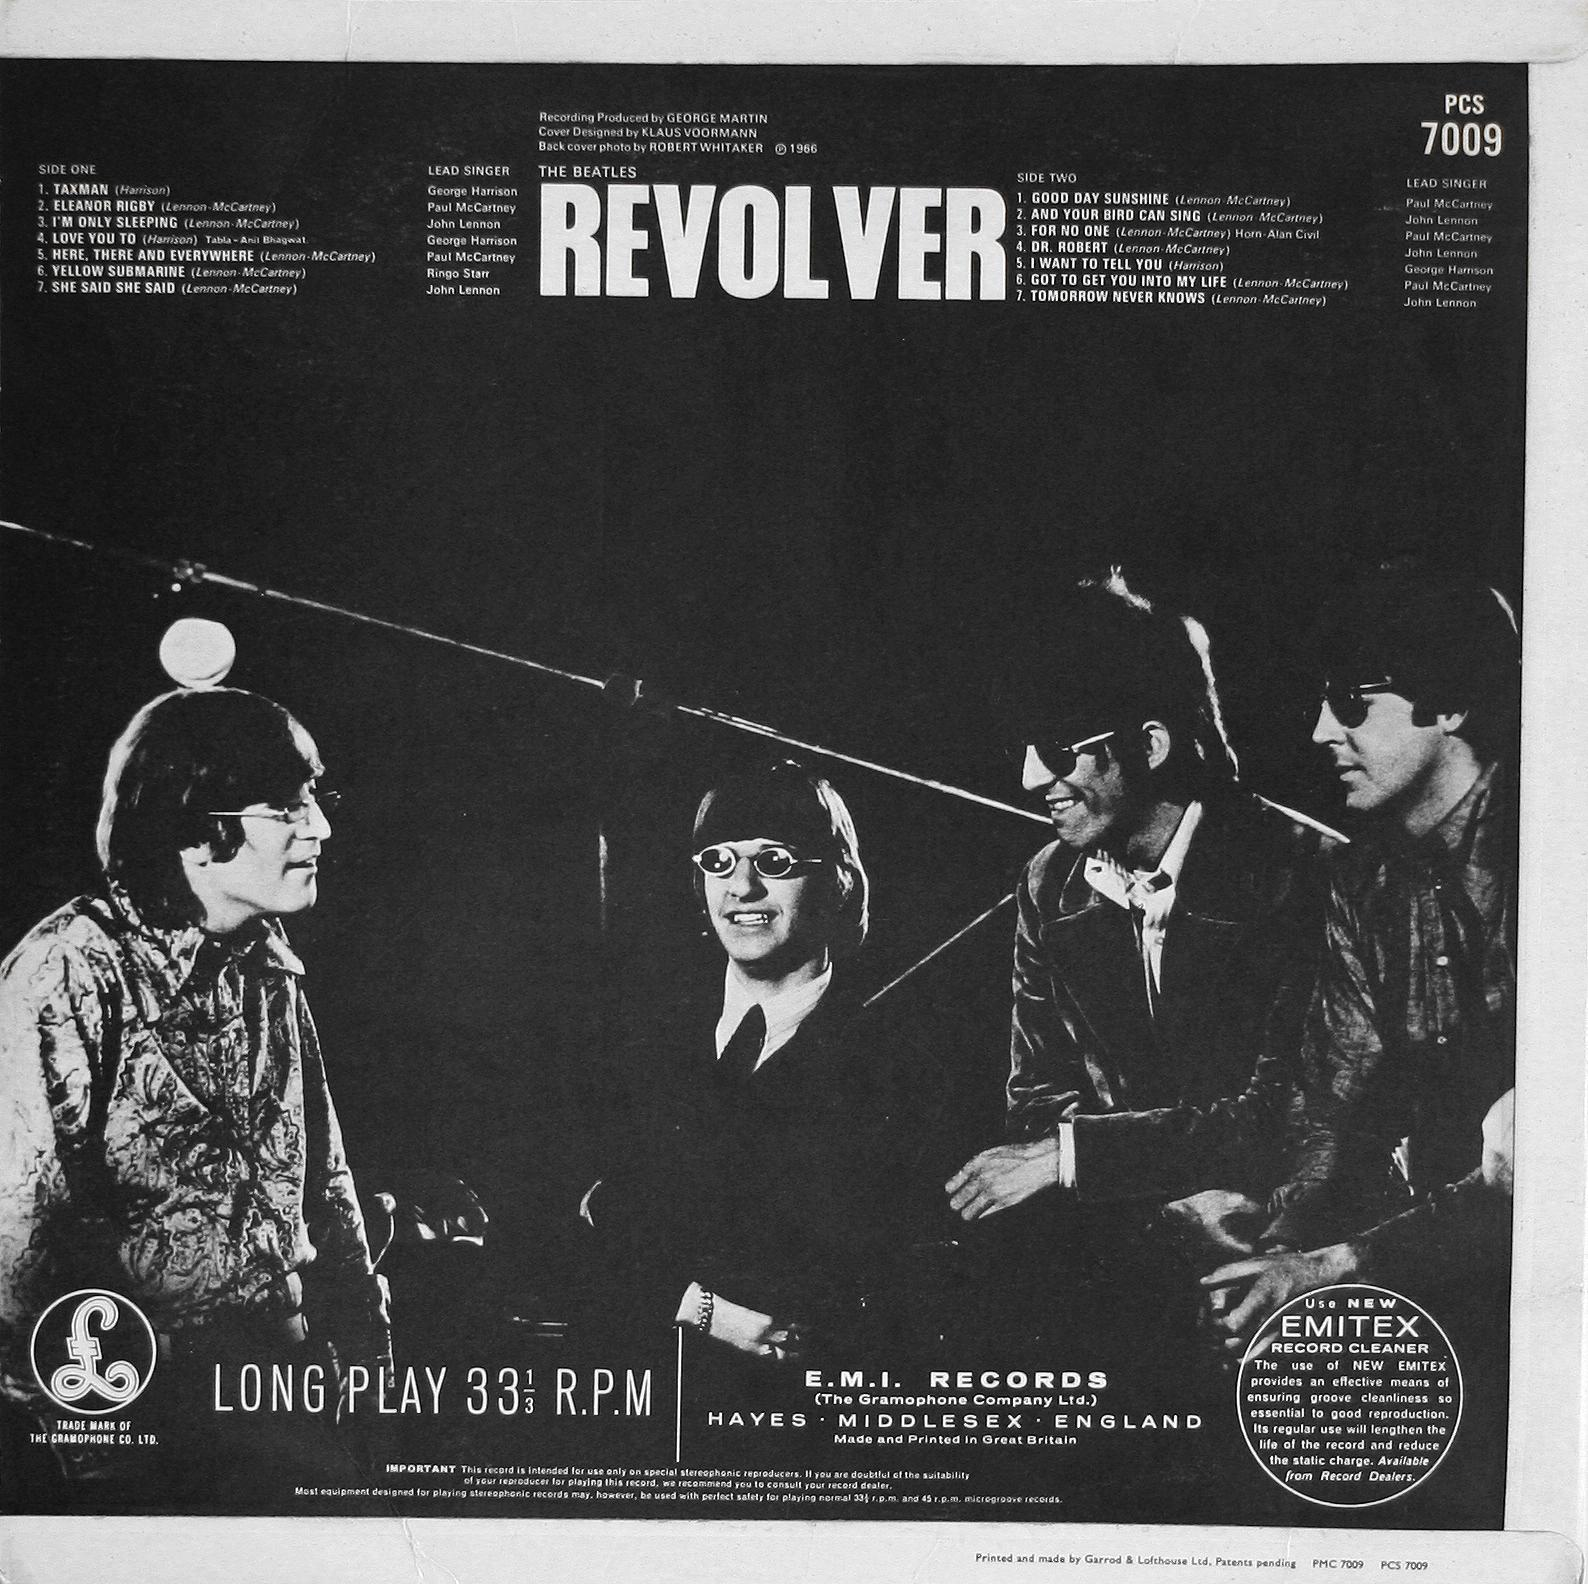 The Beatles Collection » Revolver, Parlophone, PCS 7009